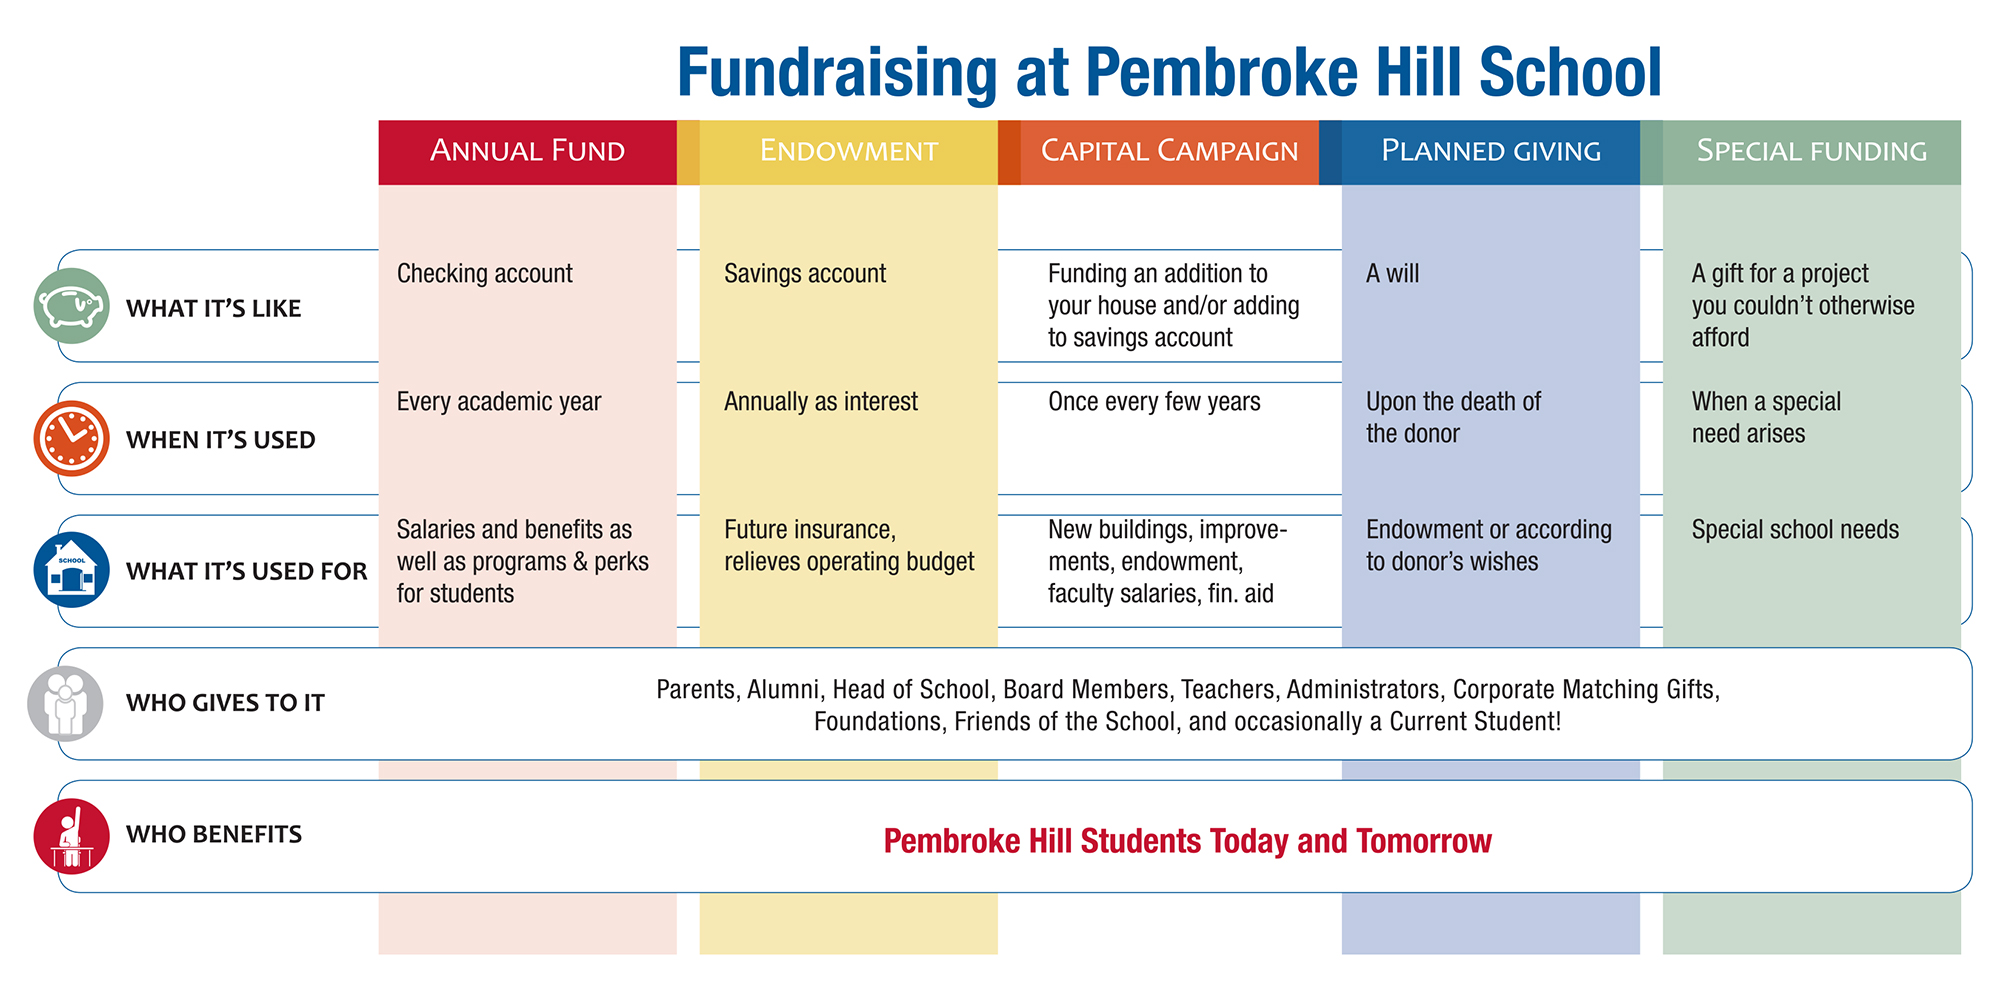 Chart of fundraising at Pembroke Hill School